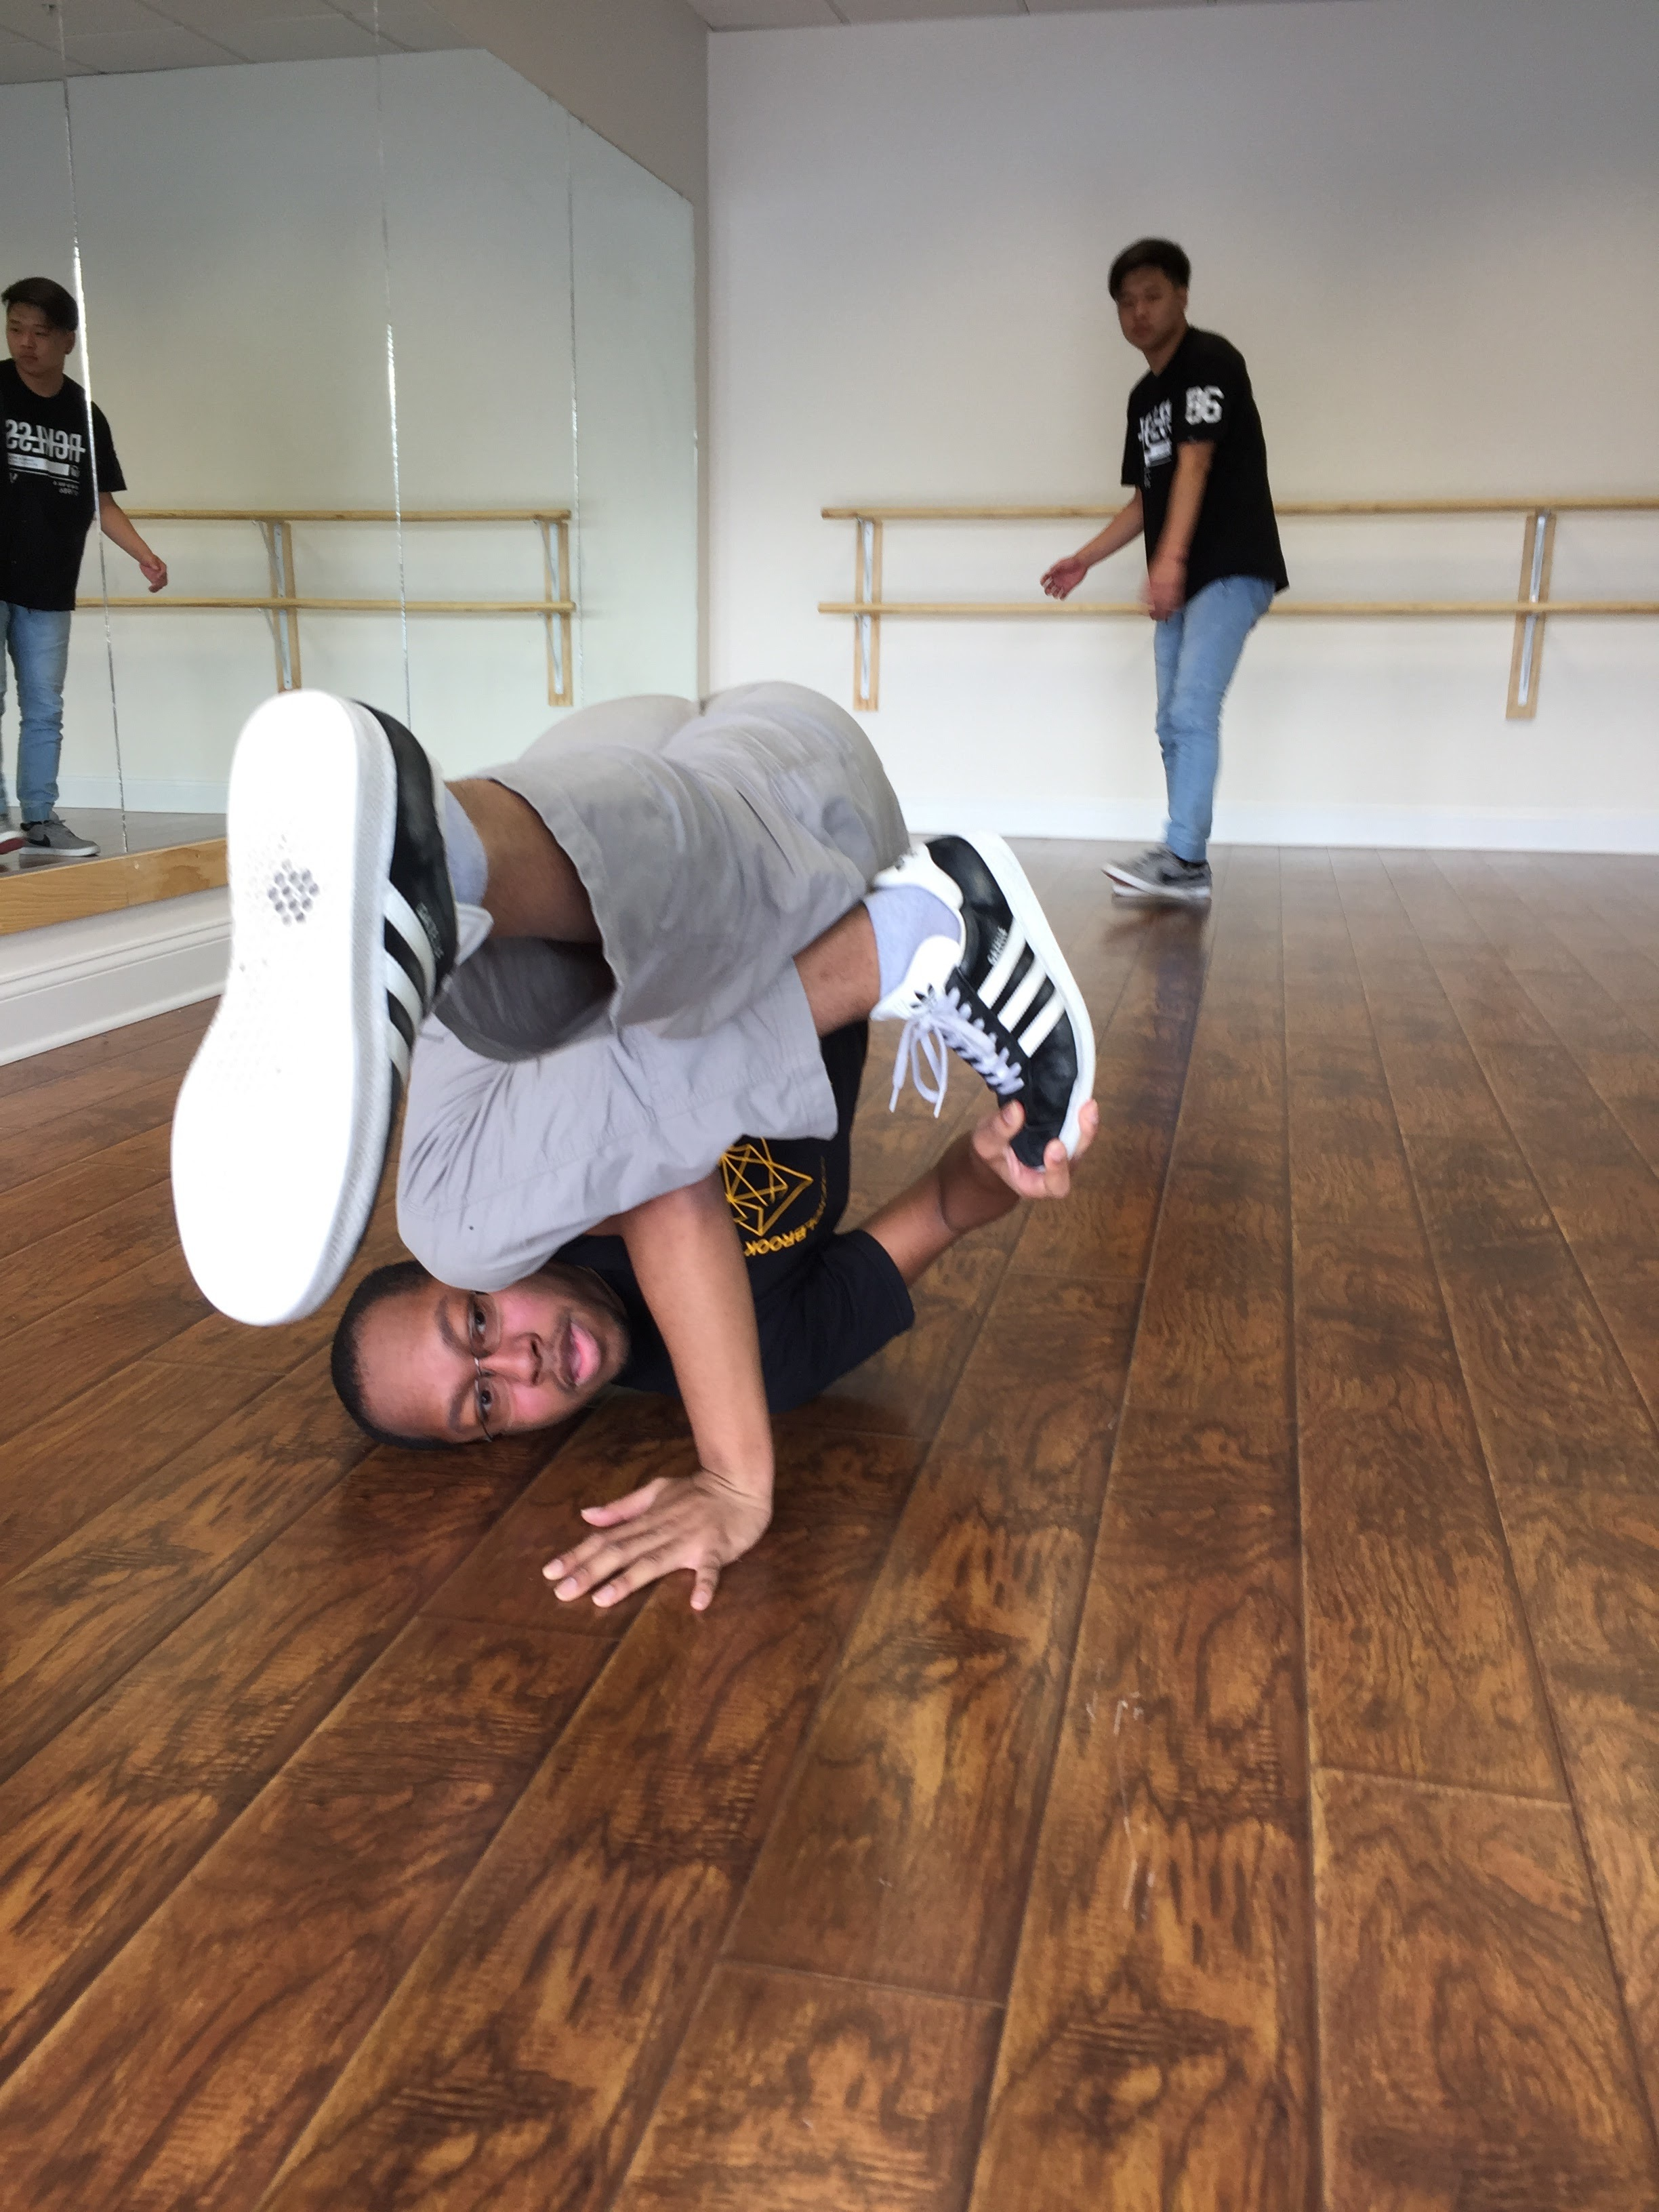 Breakdancing Seminar at Misako Beats